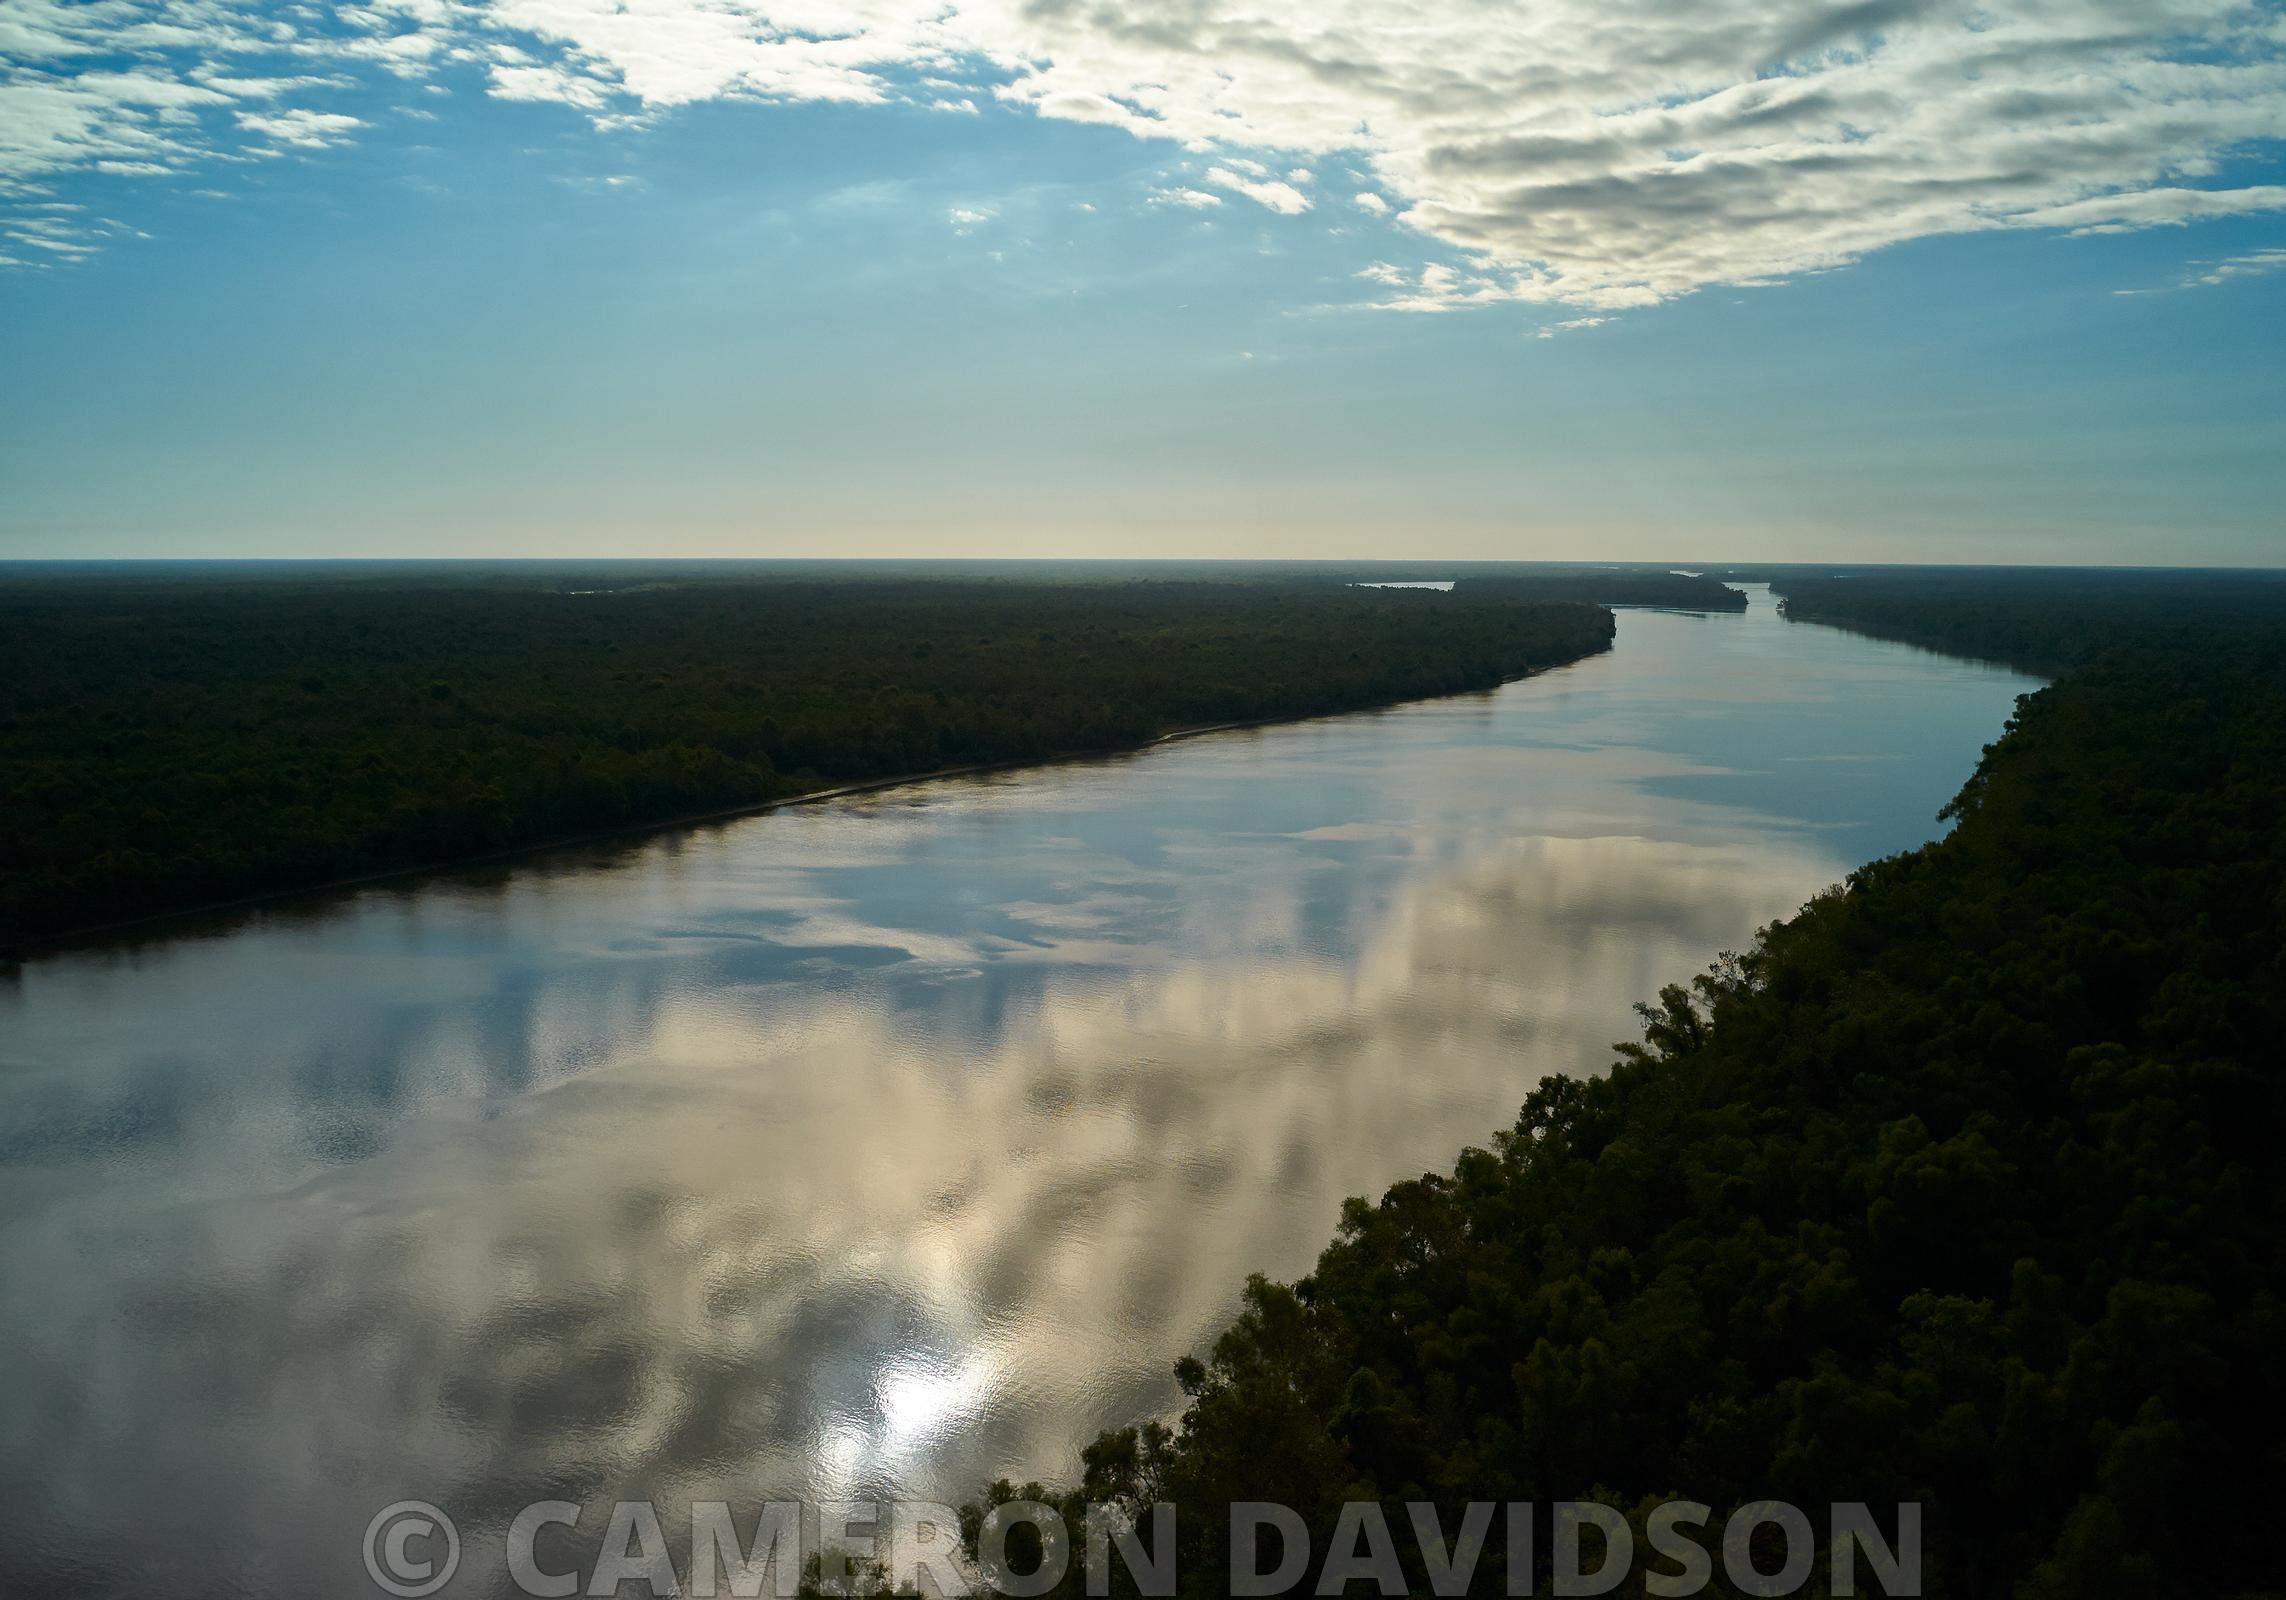 Aerial photograph of Atchafalaya River in Southern Louisiana.